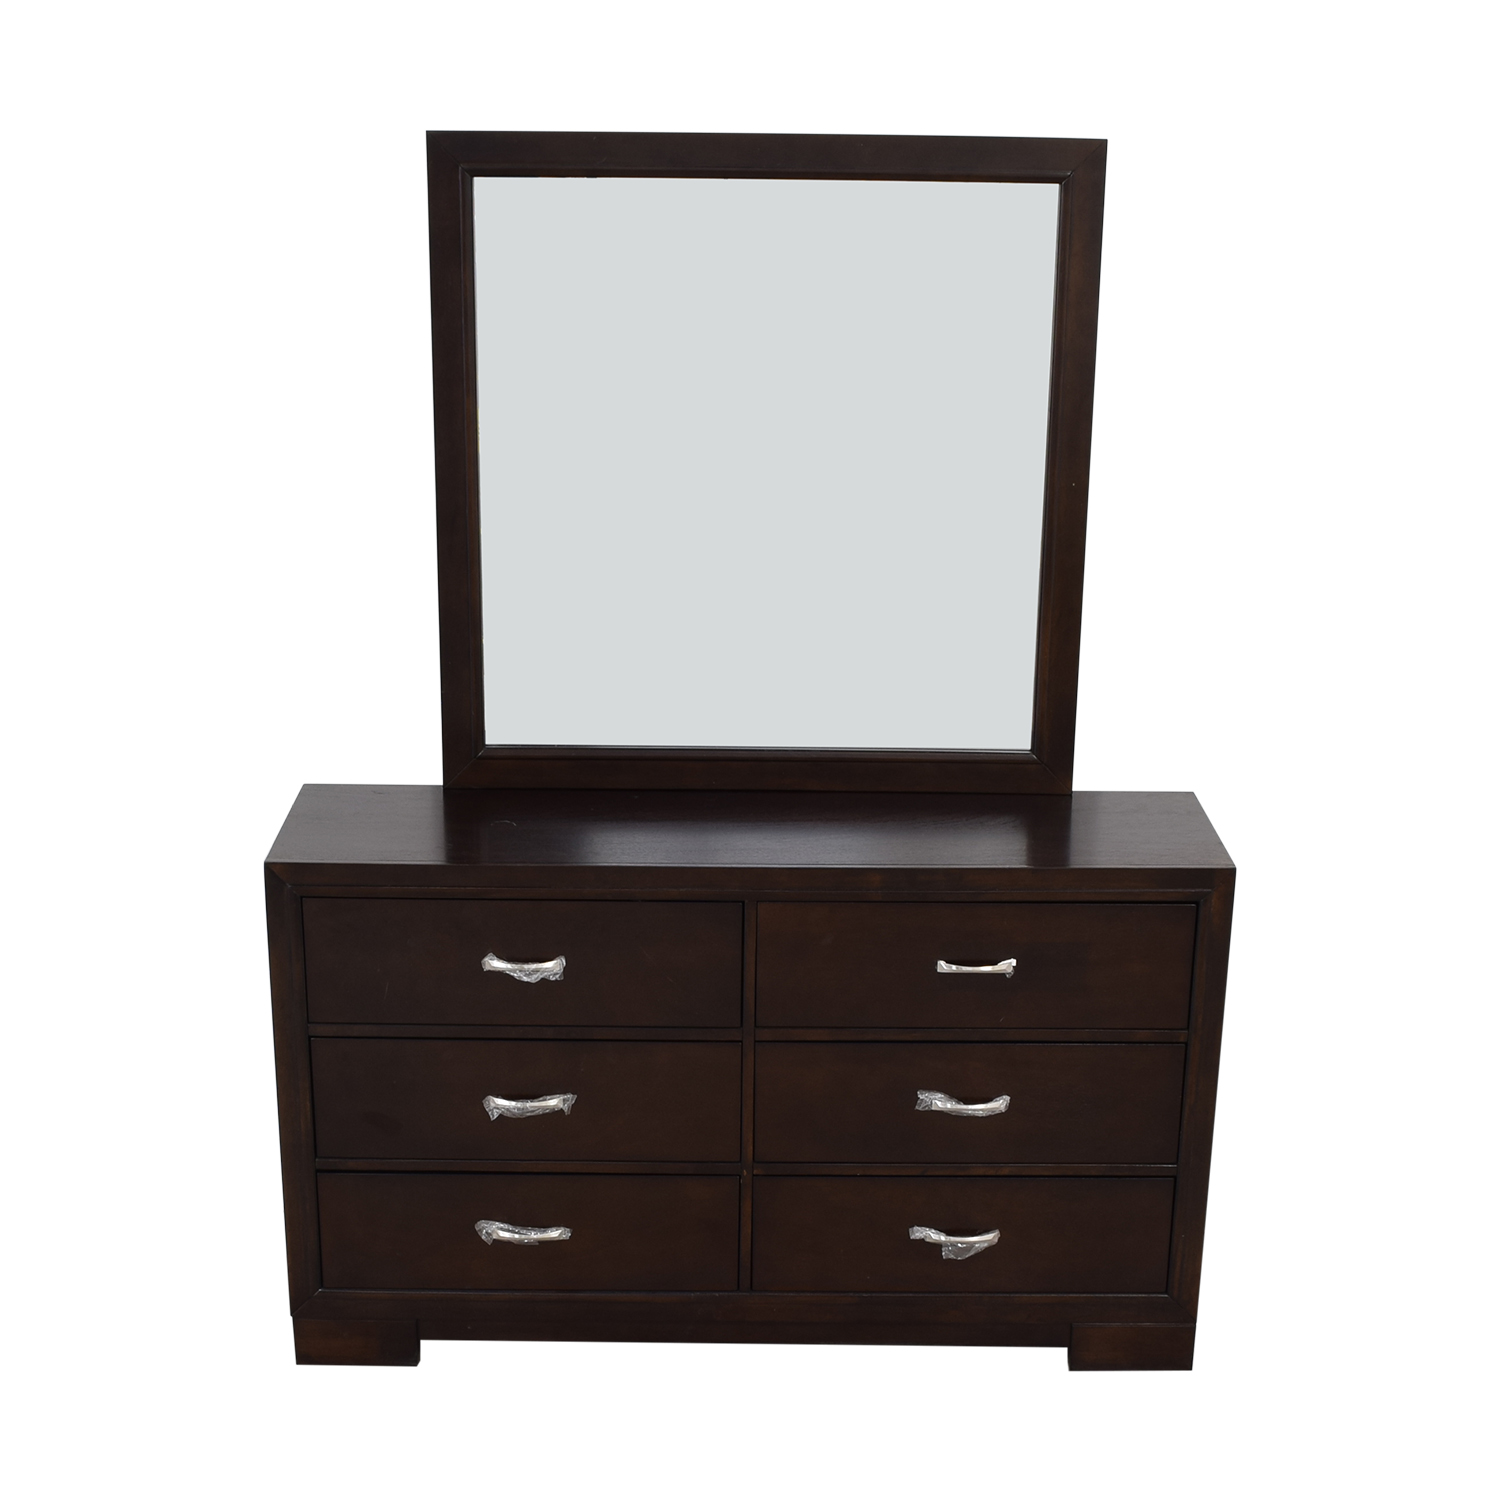 Six-Drawer Dresser with Mirror / Dressers